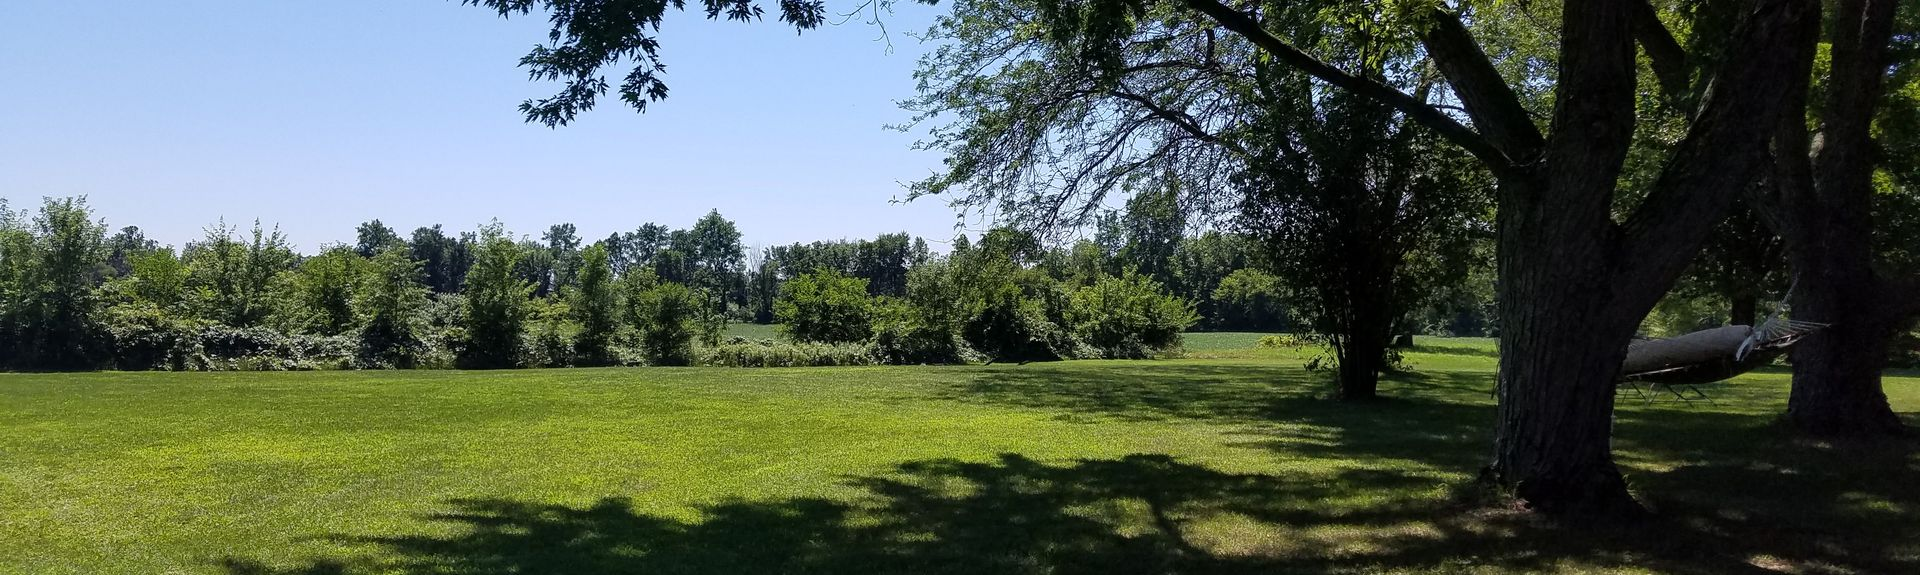 Clay Township Park, South Bend, IN, USA